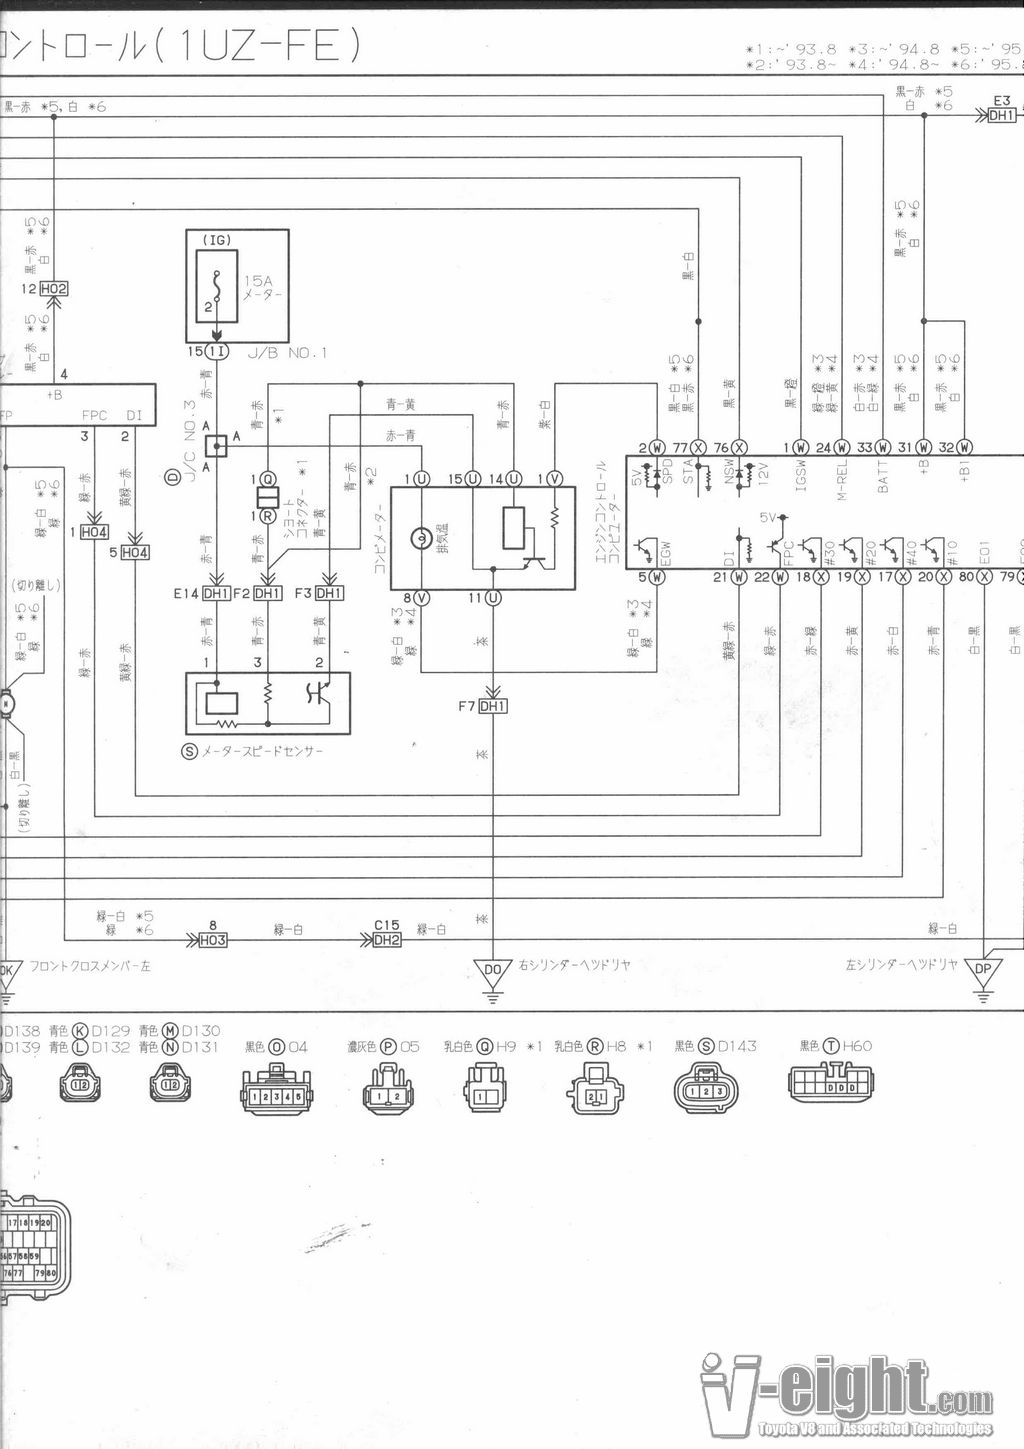 1996 toyota 4runner wiring diagram 2005 ford escape fuse box aristo get free image about